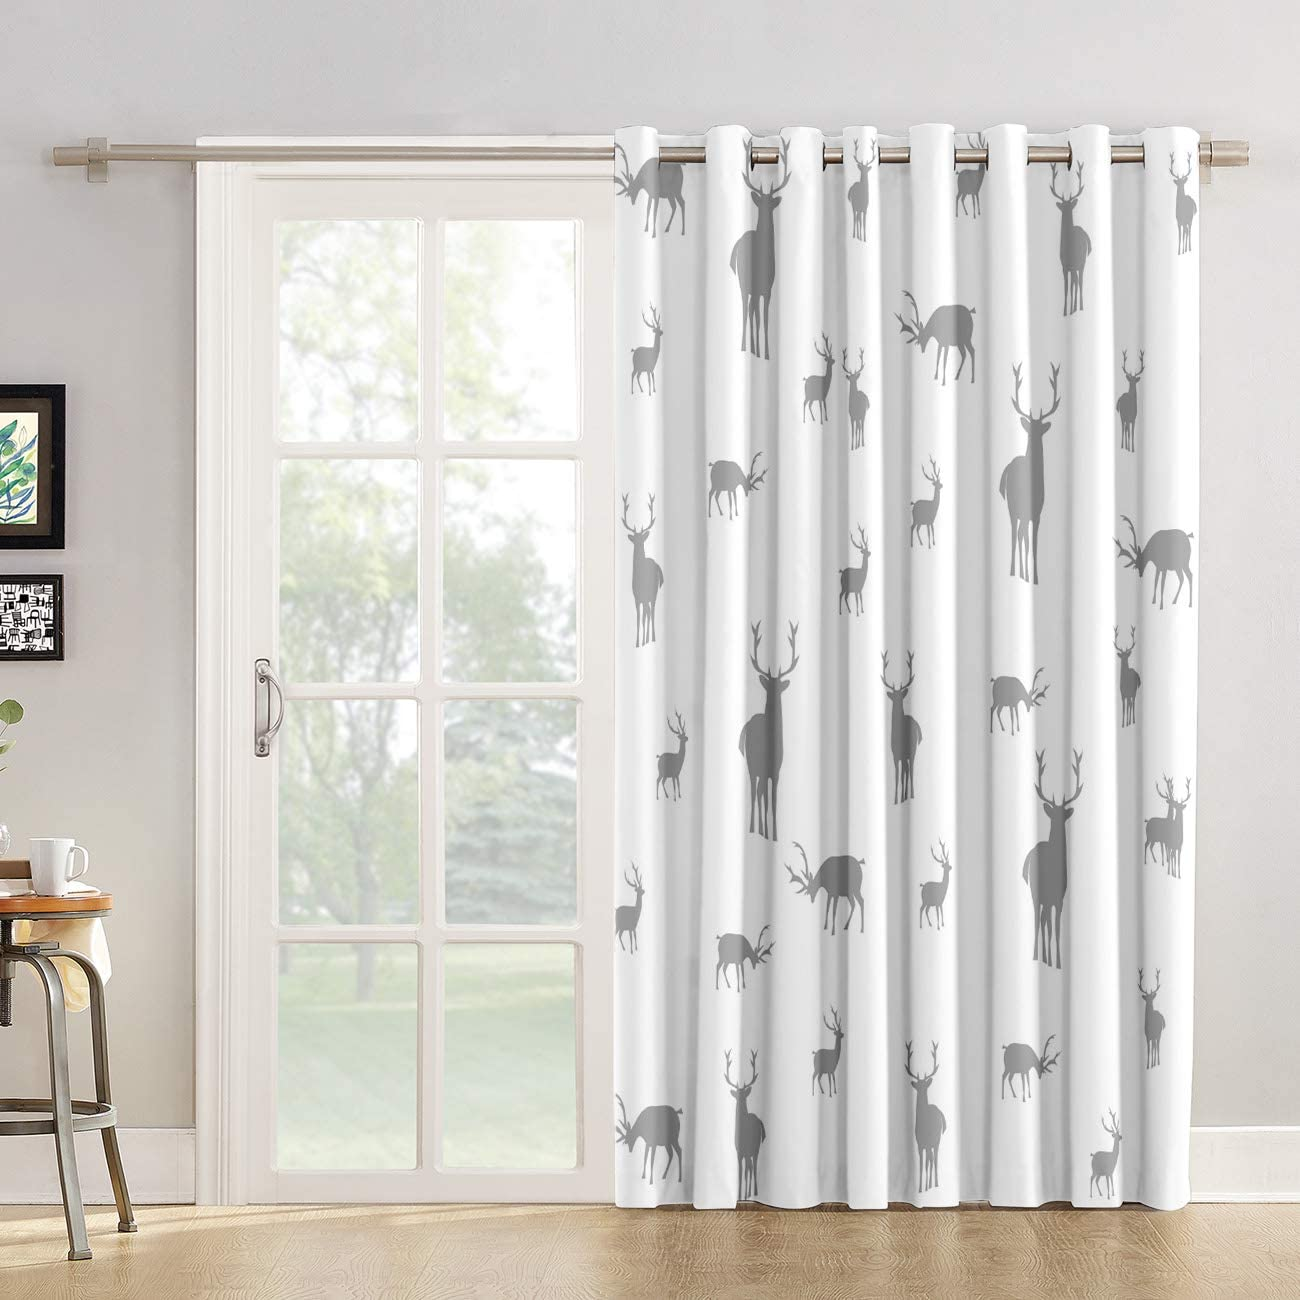 Kitchen Tier Curtains 90 inch Length Chic Window Drapes Panel for Living Room Bedroom Life Style Stag Elk in The Wild Grey and White Patterned Fabric Curtain for Sliding Glass Door Patio Door